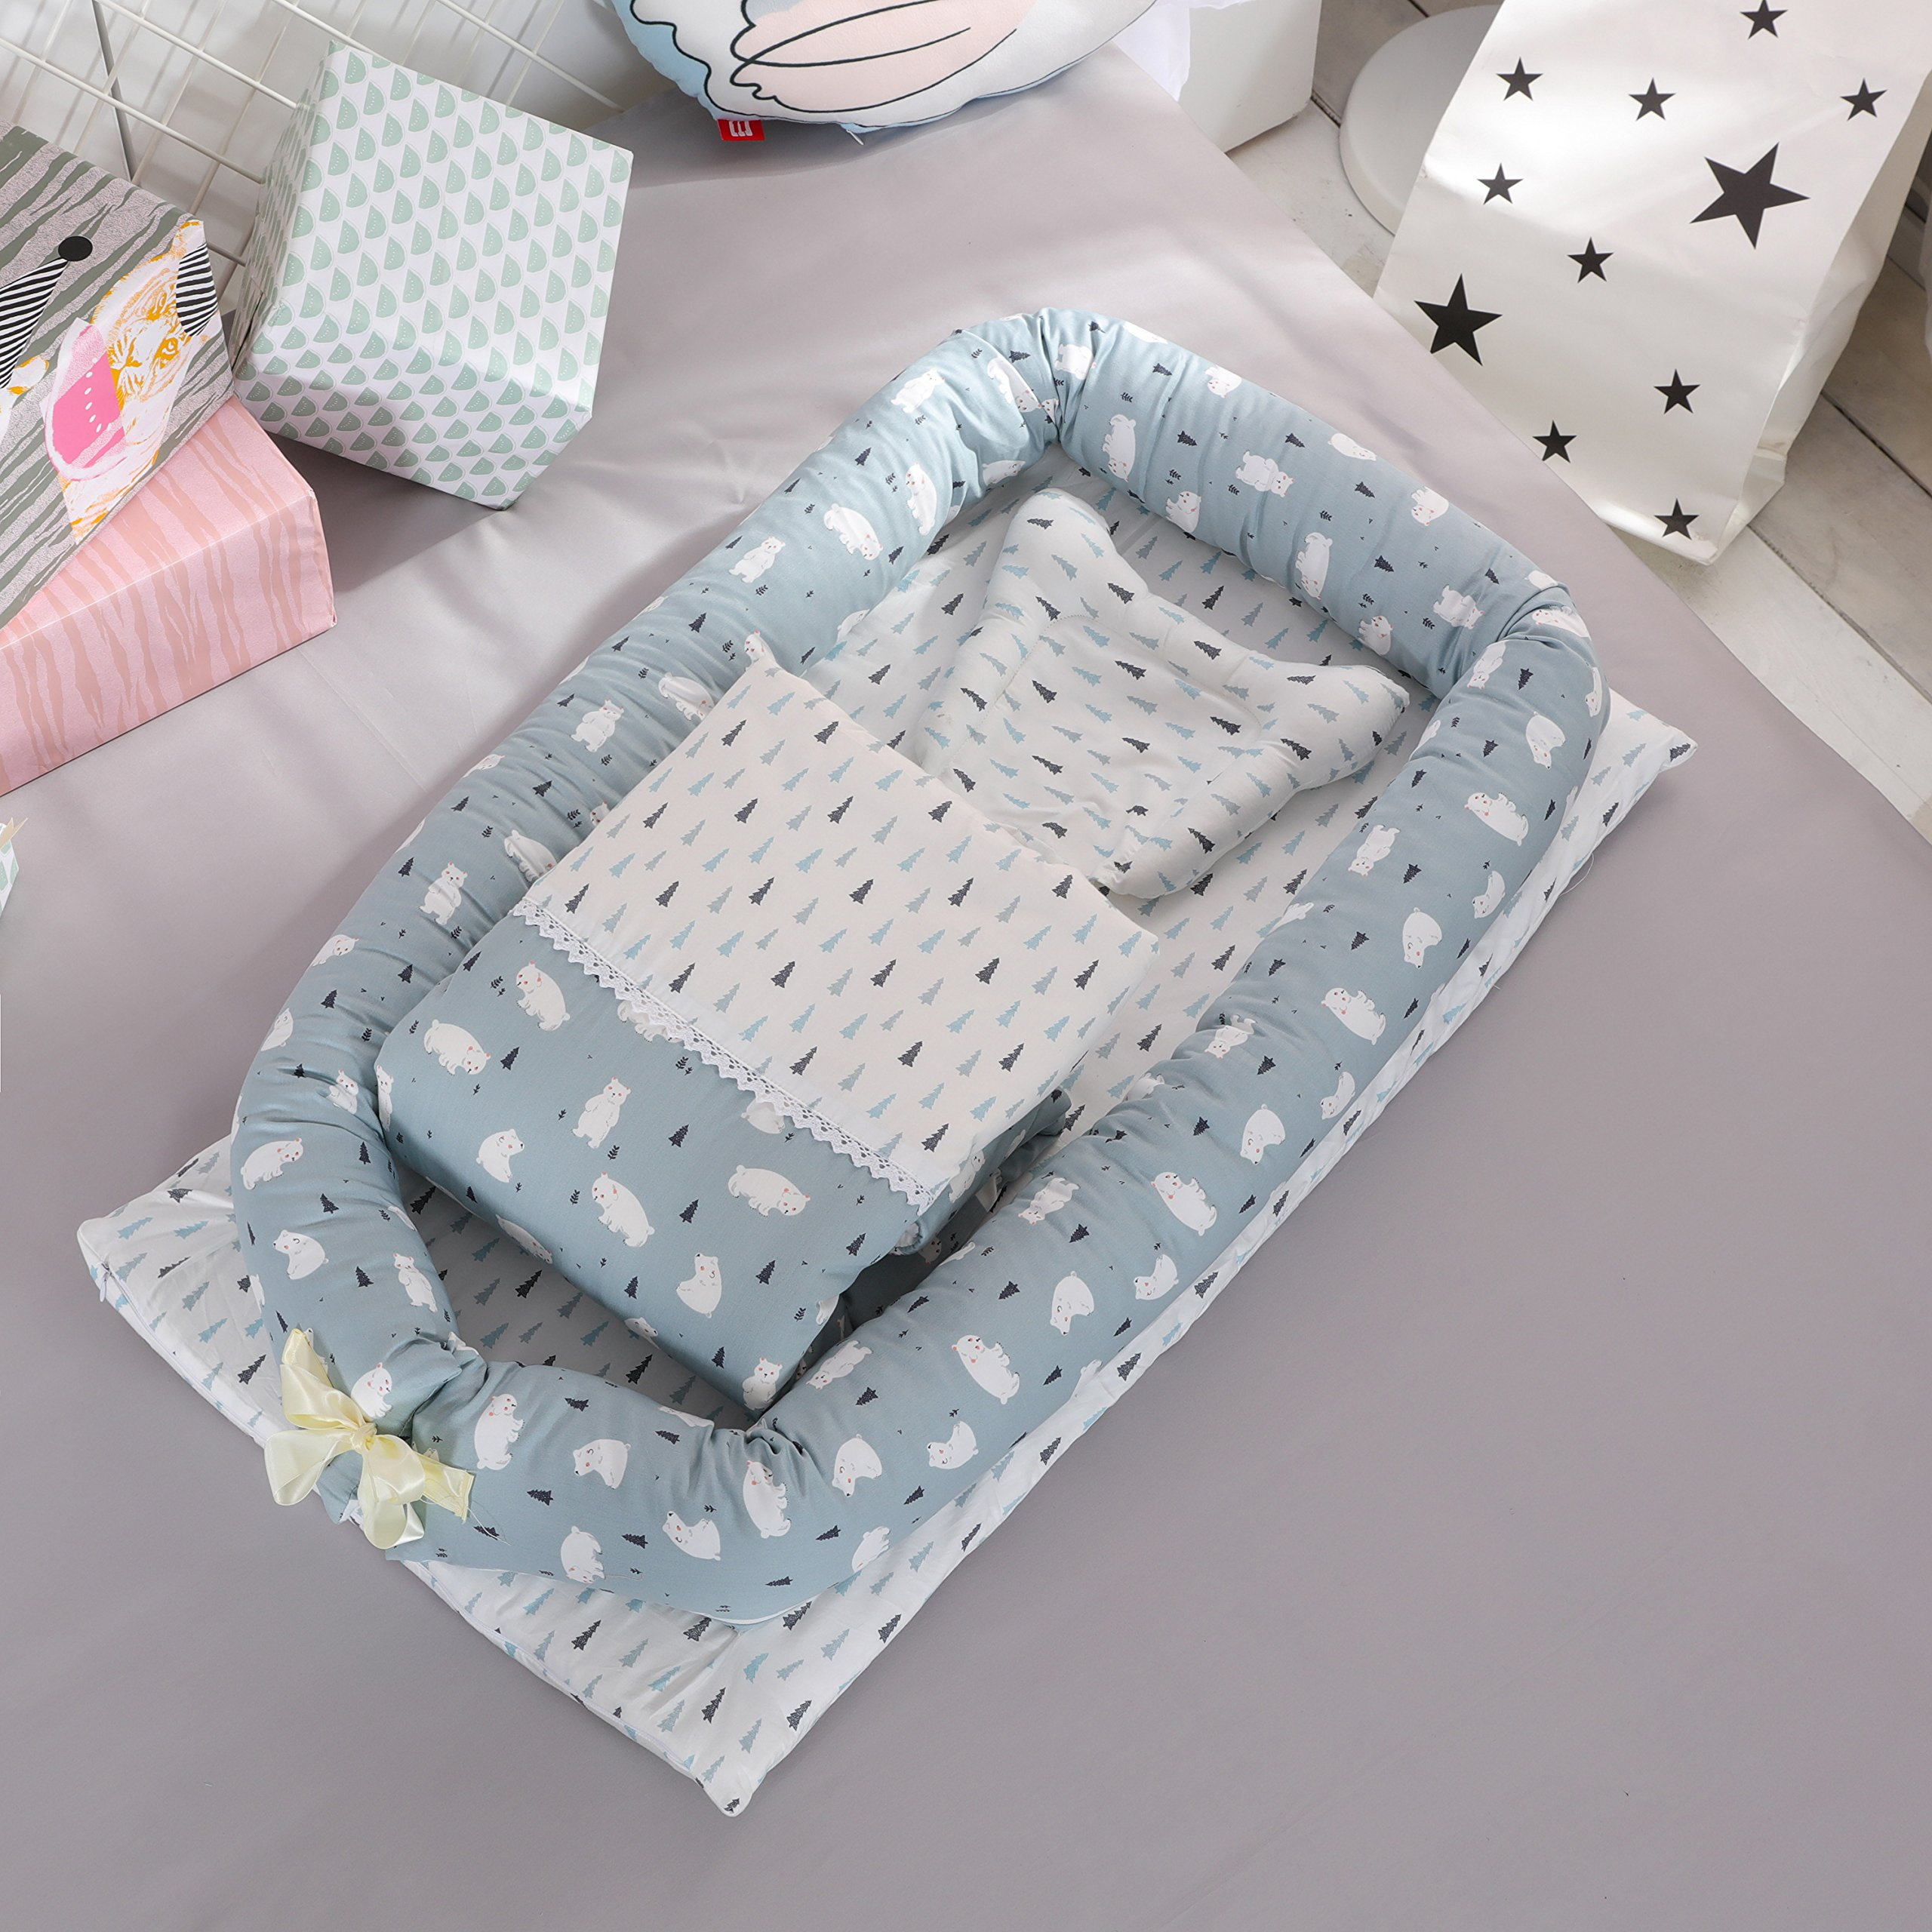 Toys Studio Baby Bassinet for Bed Portable Baby Co-Sleeping Cribs & Cradles Lounger Cushion 100% Cotton Breathable and Hypoallergenic Travel Infant Bed for Newborn 0-24 Months (Bear)